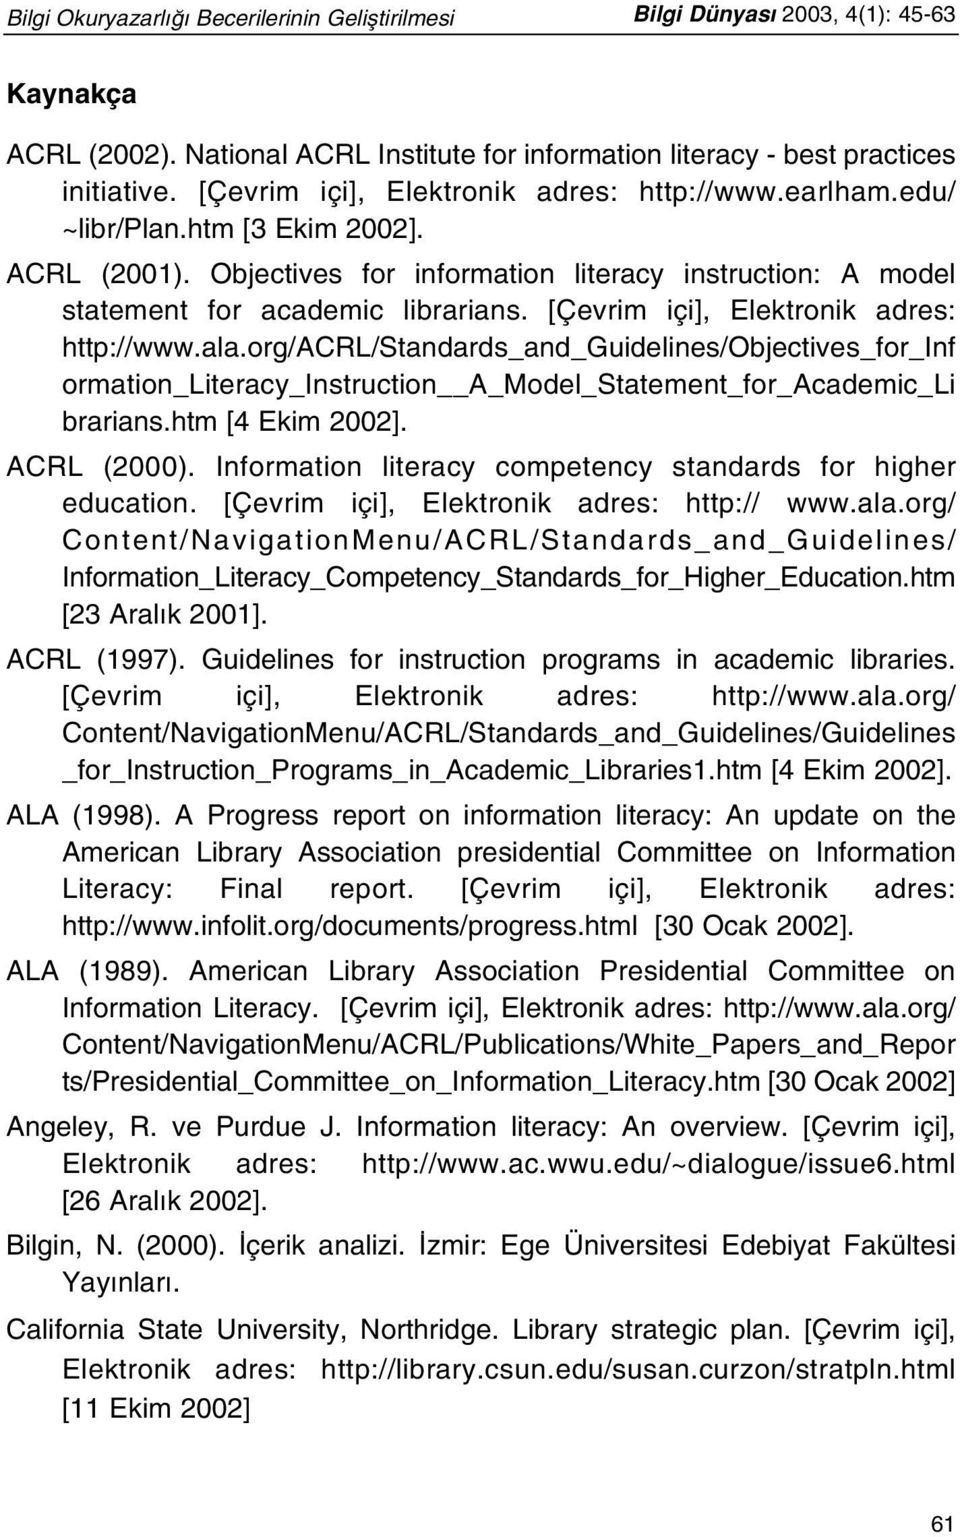 [Çevrim içi], Elektronik adres: http://www.ala.org/acrl/standards_and_guidelines/objectives_for_inf ormation_literacy_instruction A_Model_Statement_for_Academic_Li brarians.htm [4 Ekim 2002].